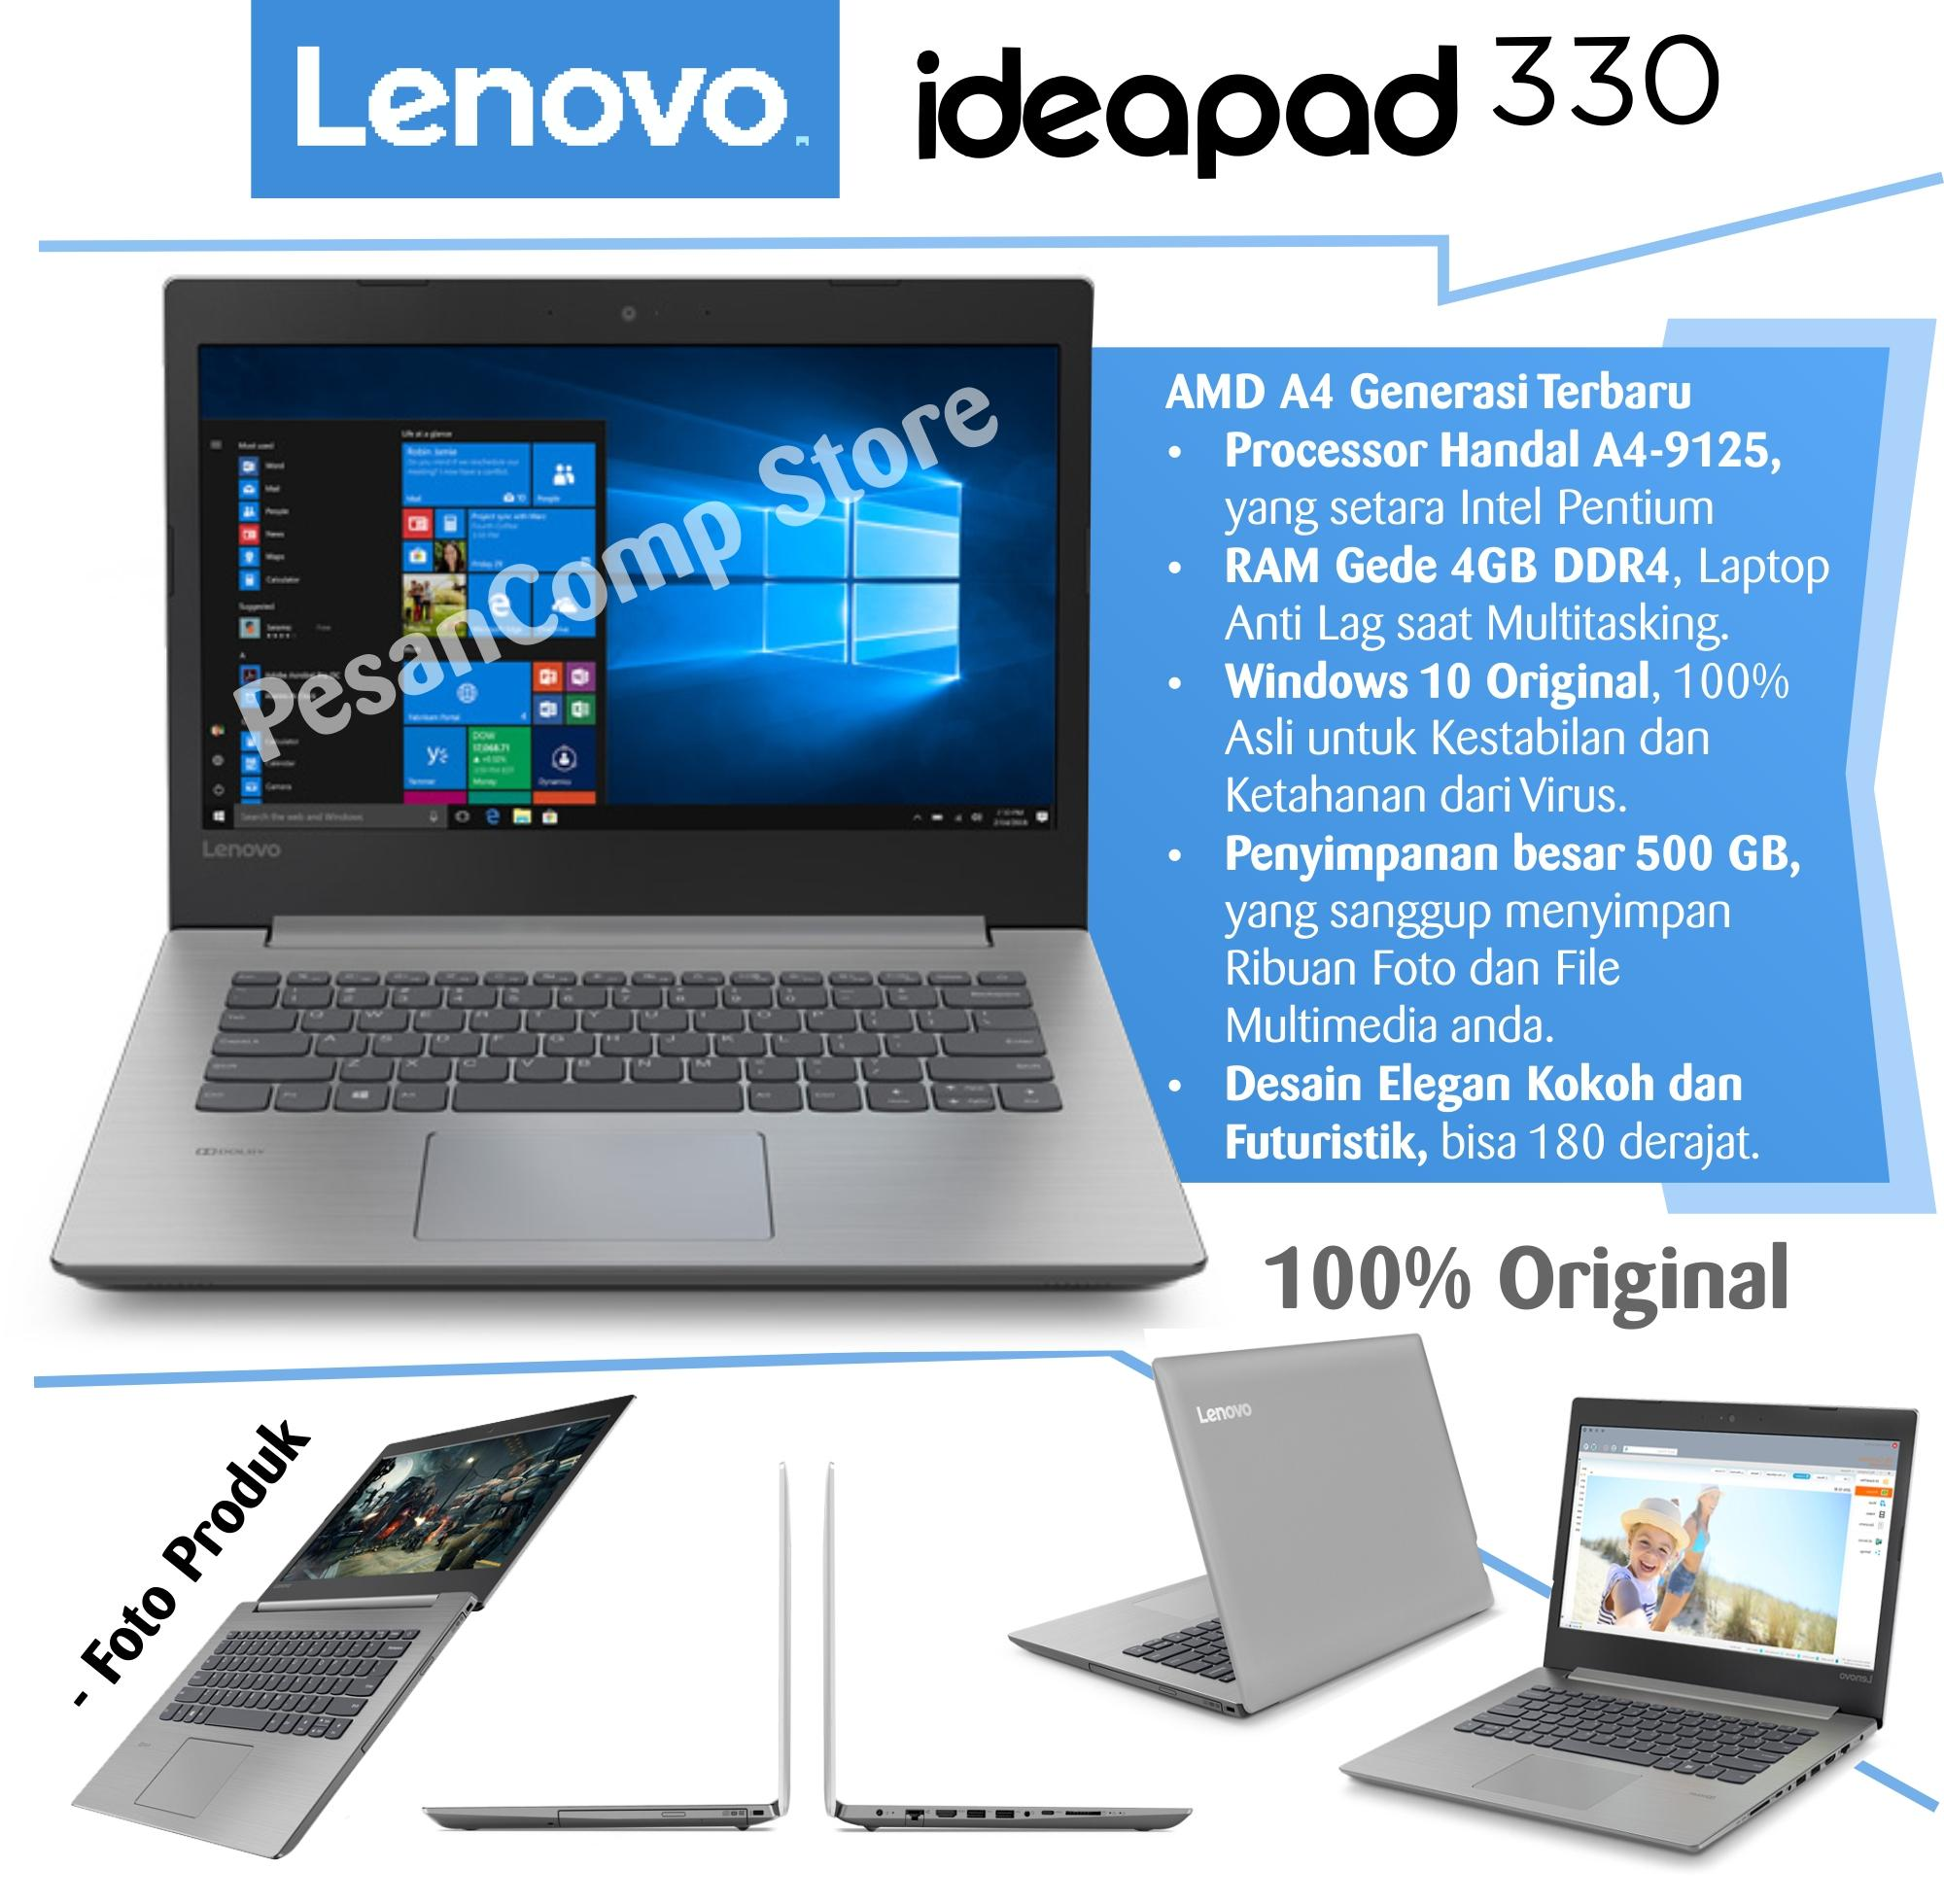 Lenovo IdeaPad 330 14AST AMD A4 9125 Windows 10 RAM 4GB DDR4 500GB